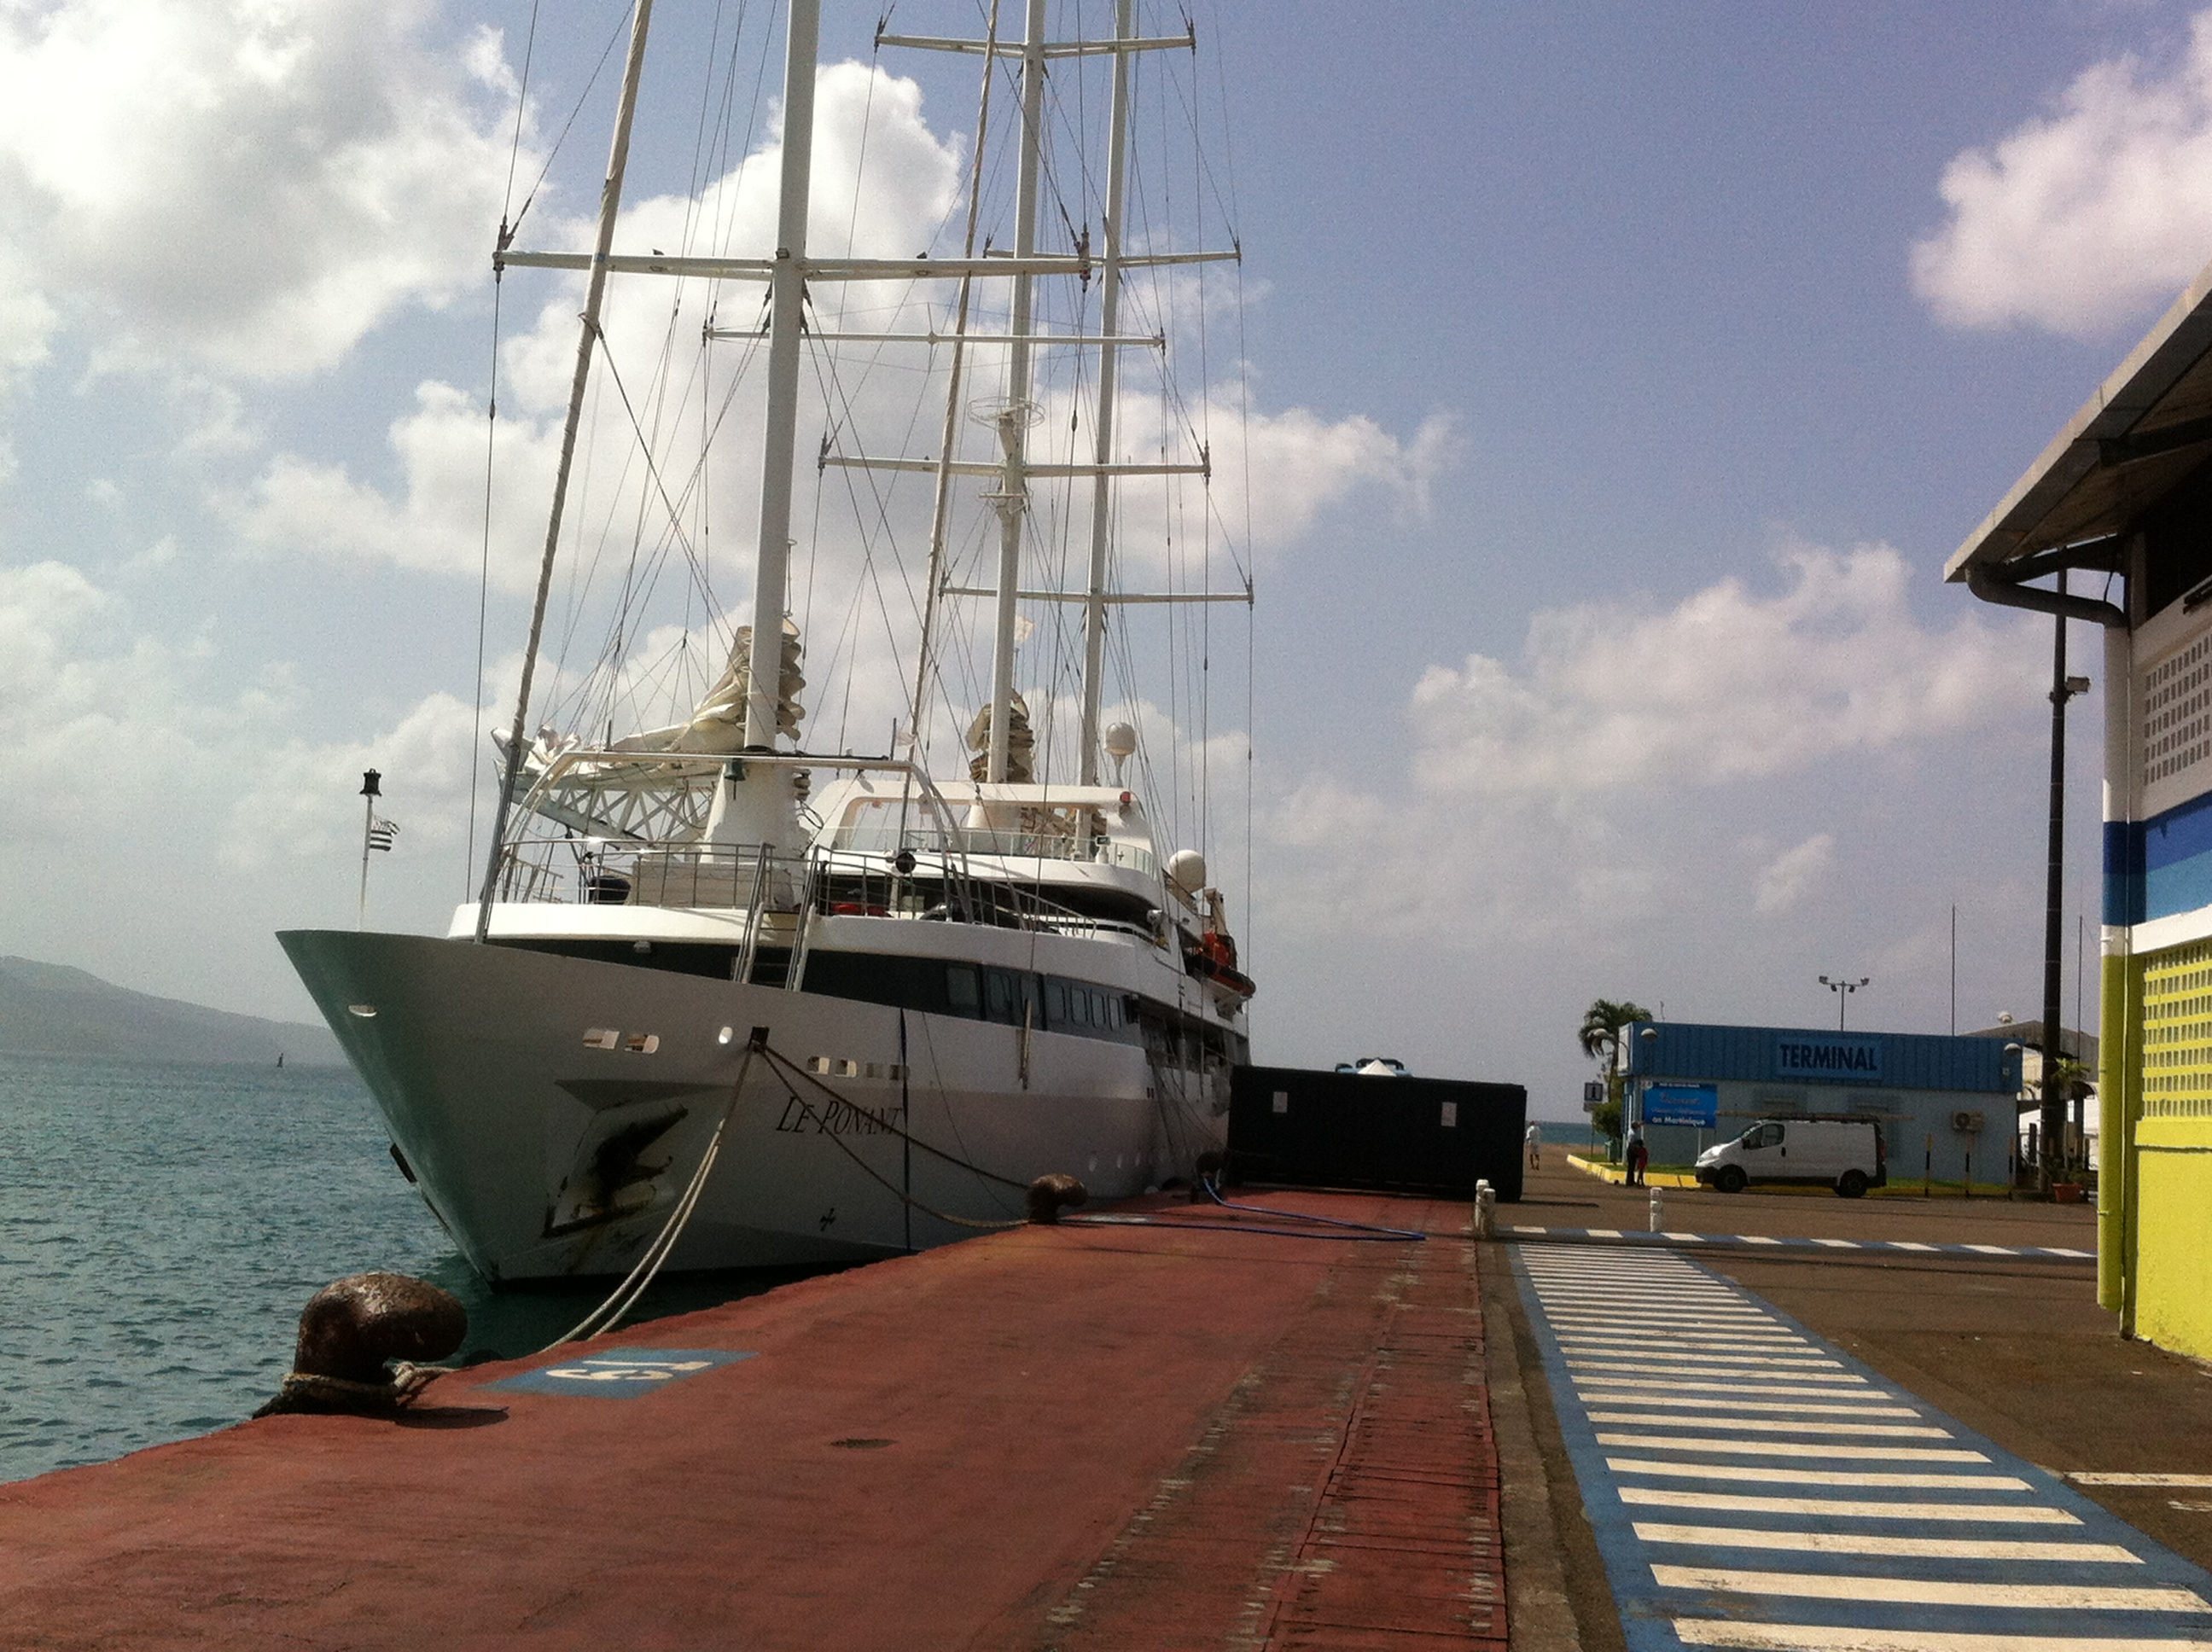 Le Ponant getting ready for her guests in Fort de France on January 18, 2014